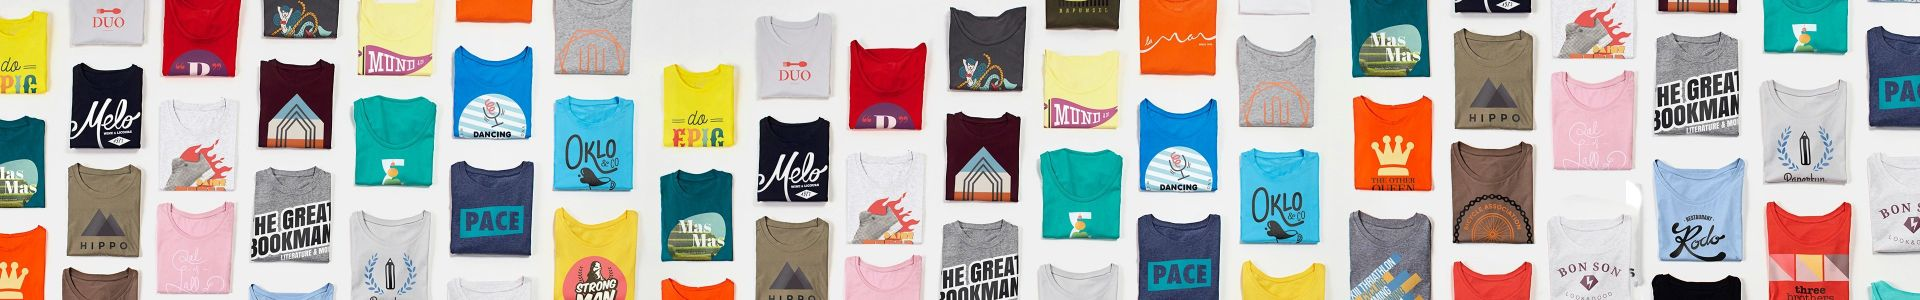 T-shirts bedrucken in Berlin | Camaloon